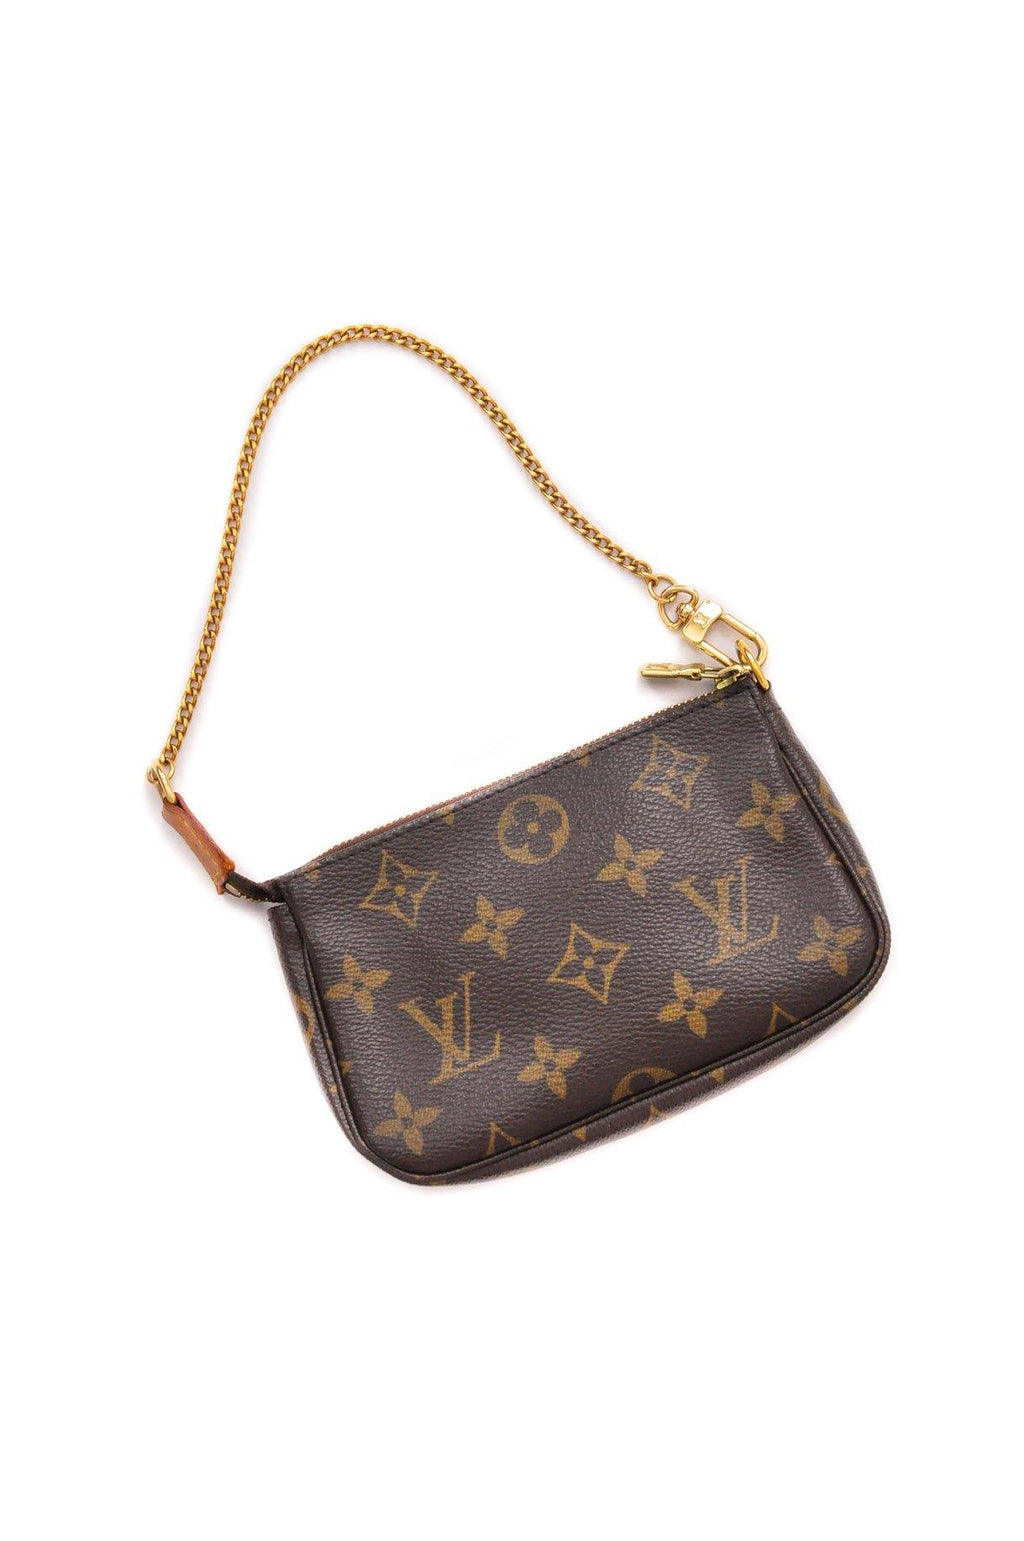 Louis Vuitton Mini Pochette Bag